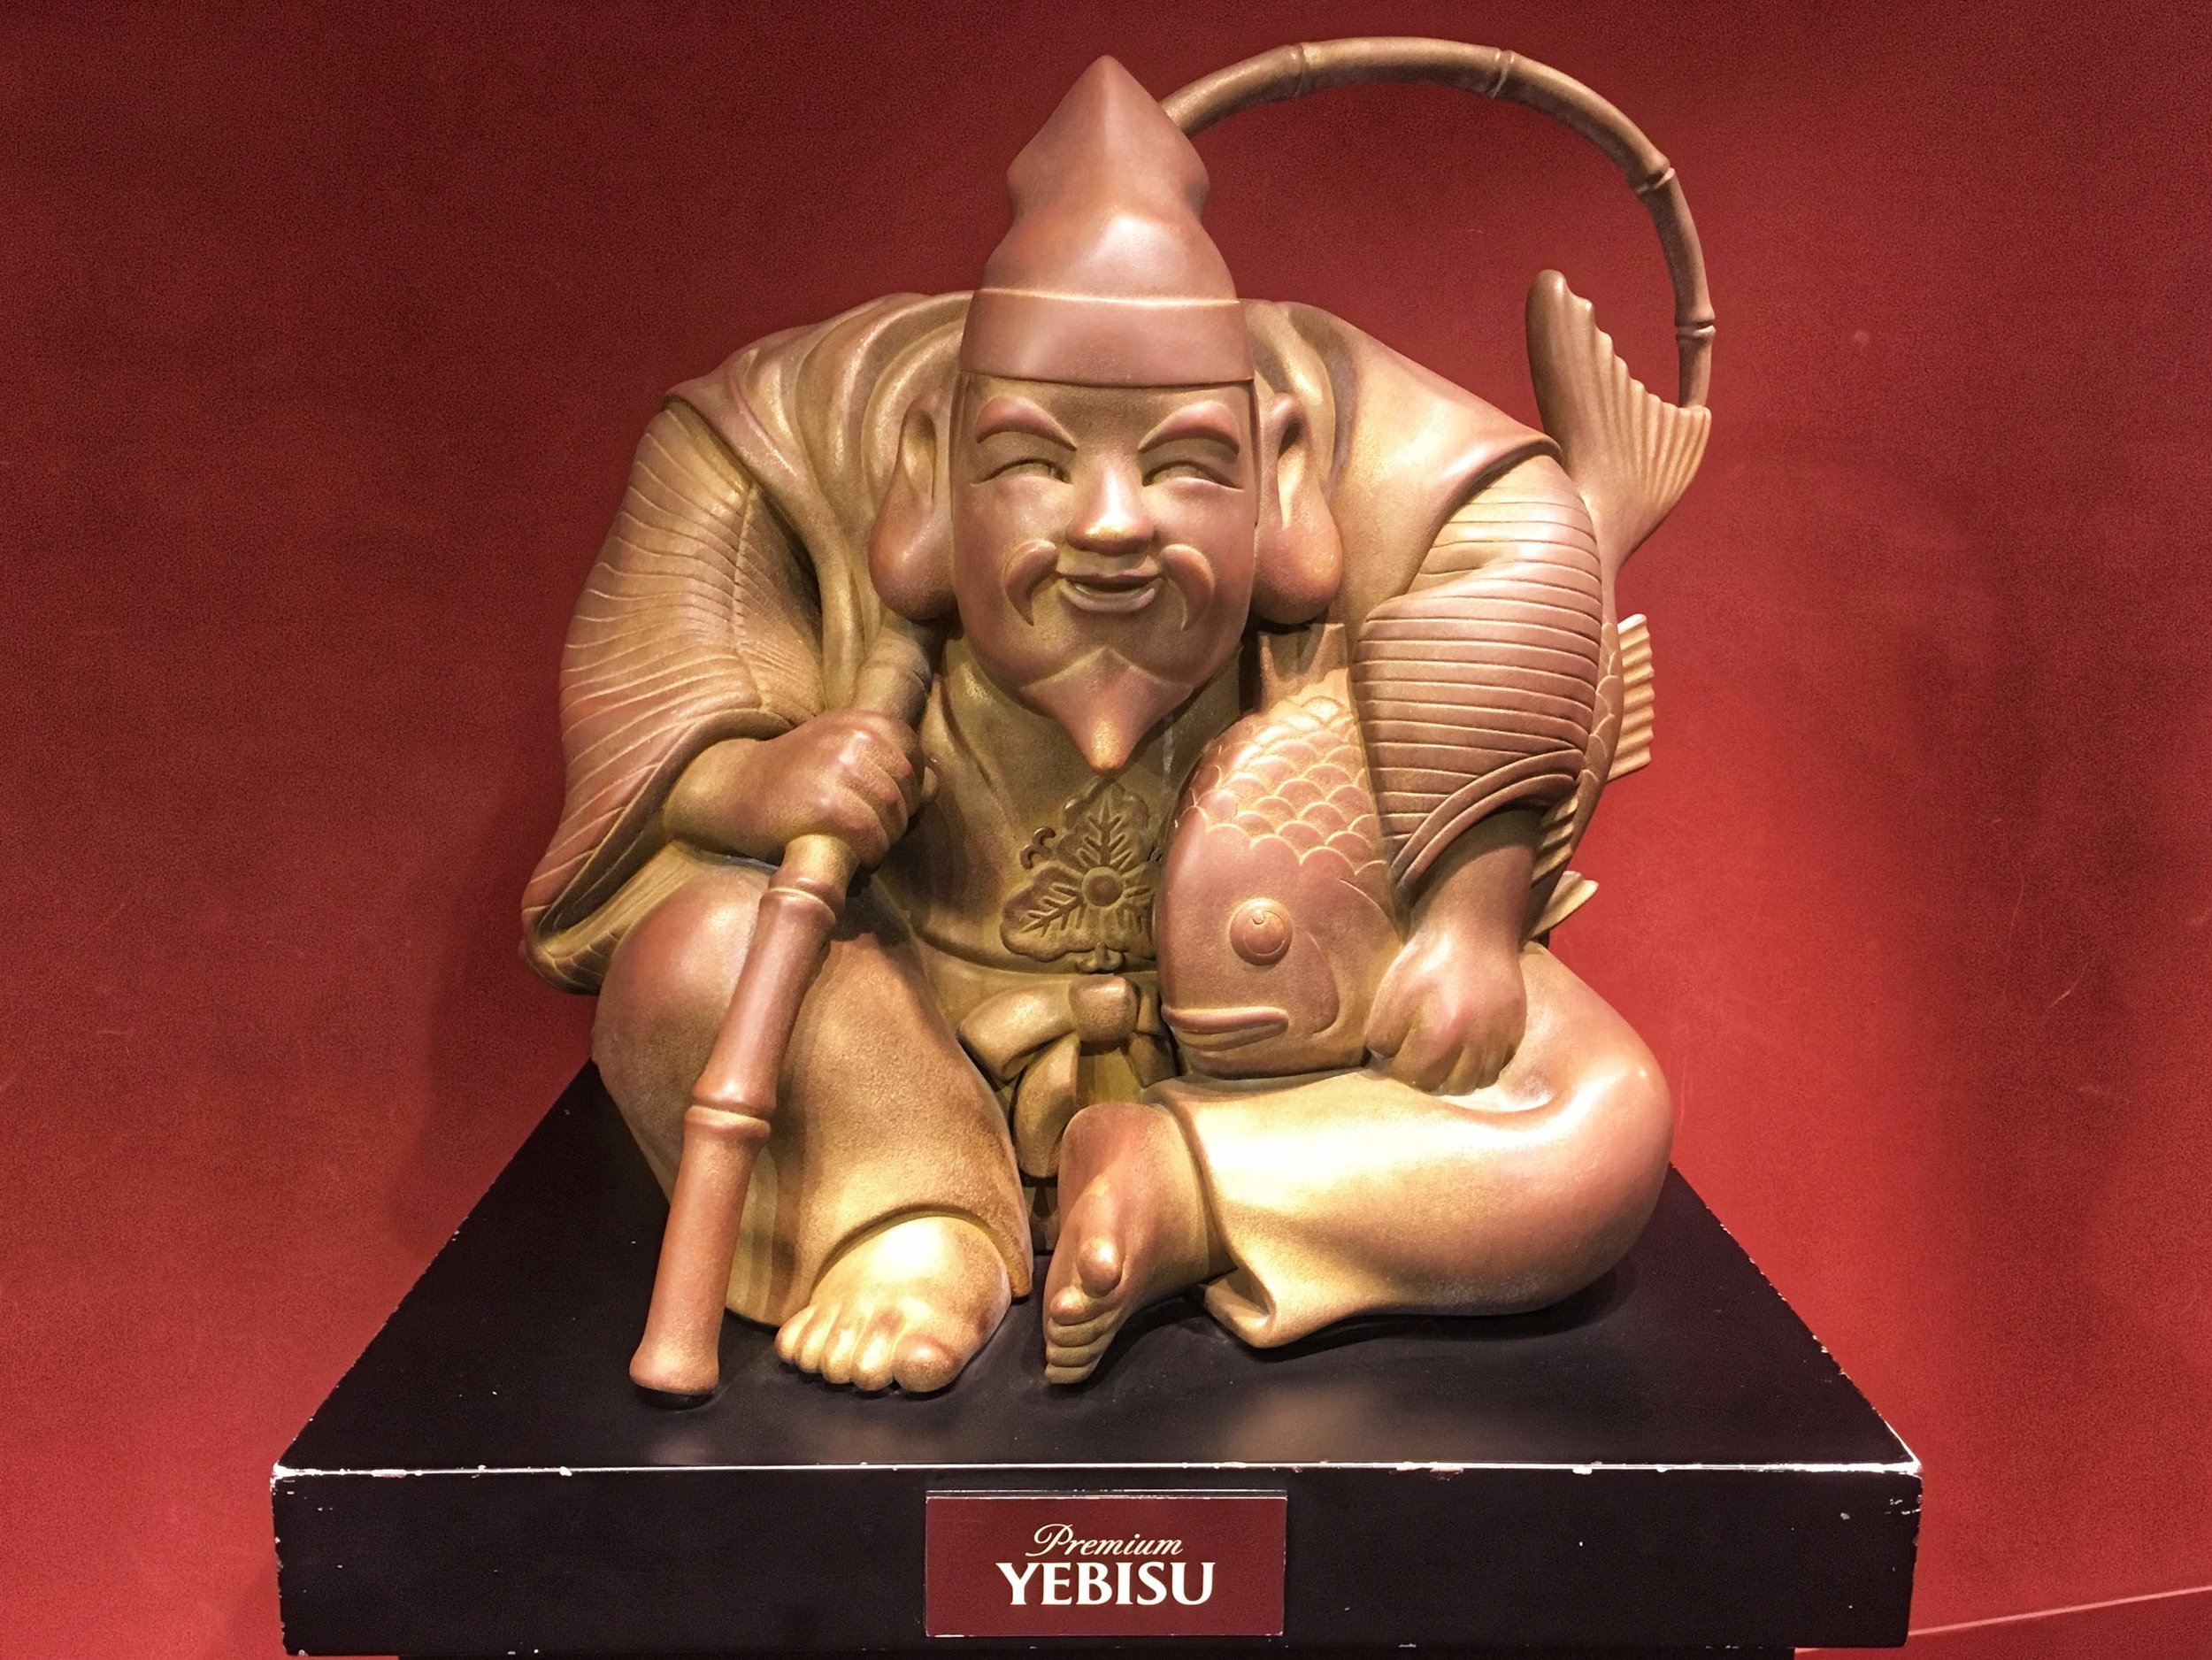 Yebisu, the Japanese God of Luck and mascot of Yebisu Beer